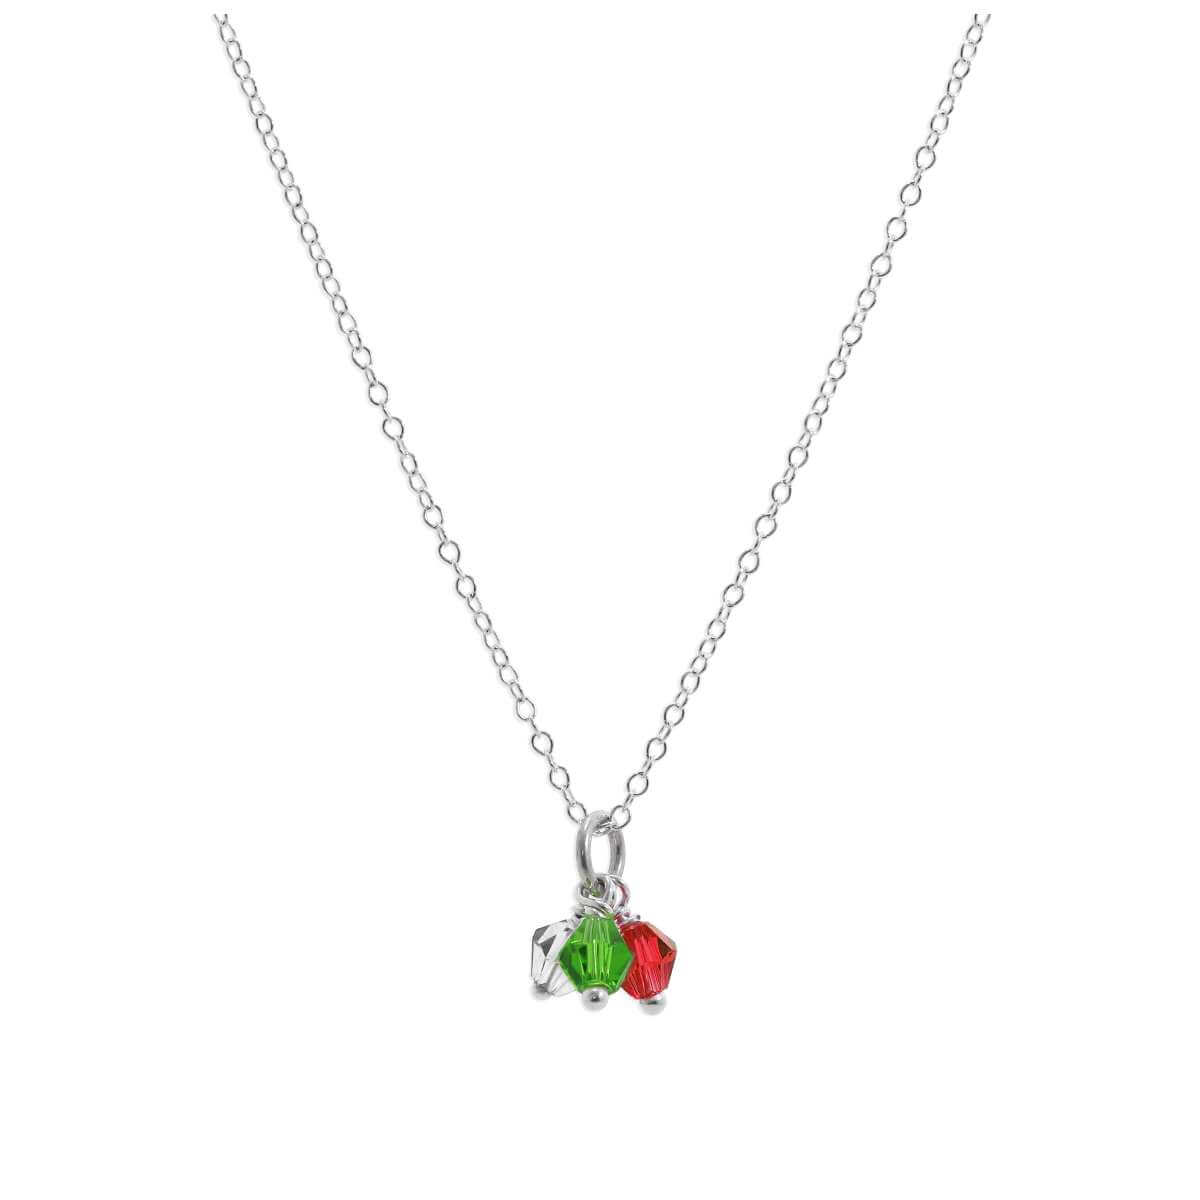 Sterling Silver Tricolour CZ Bead Necklace 14 - 32 Inches